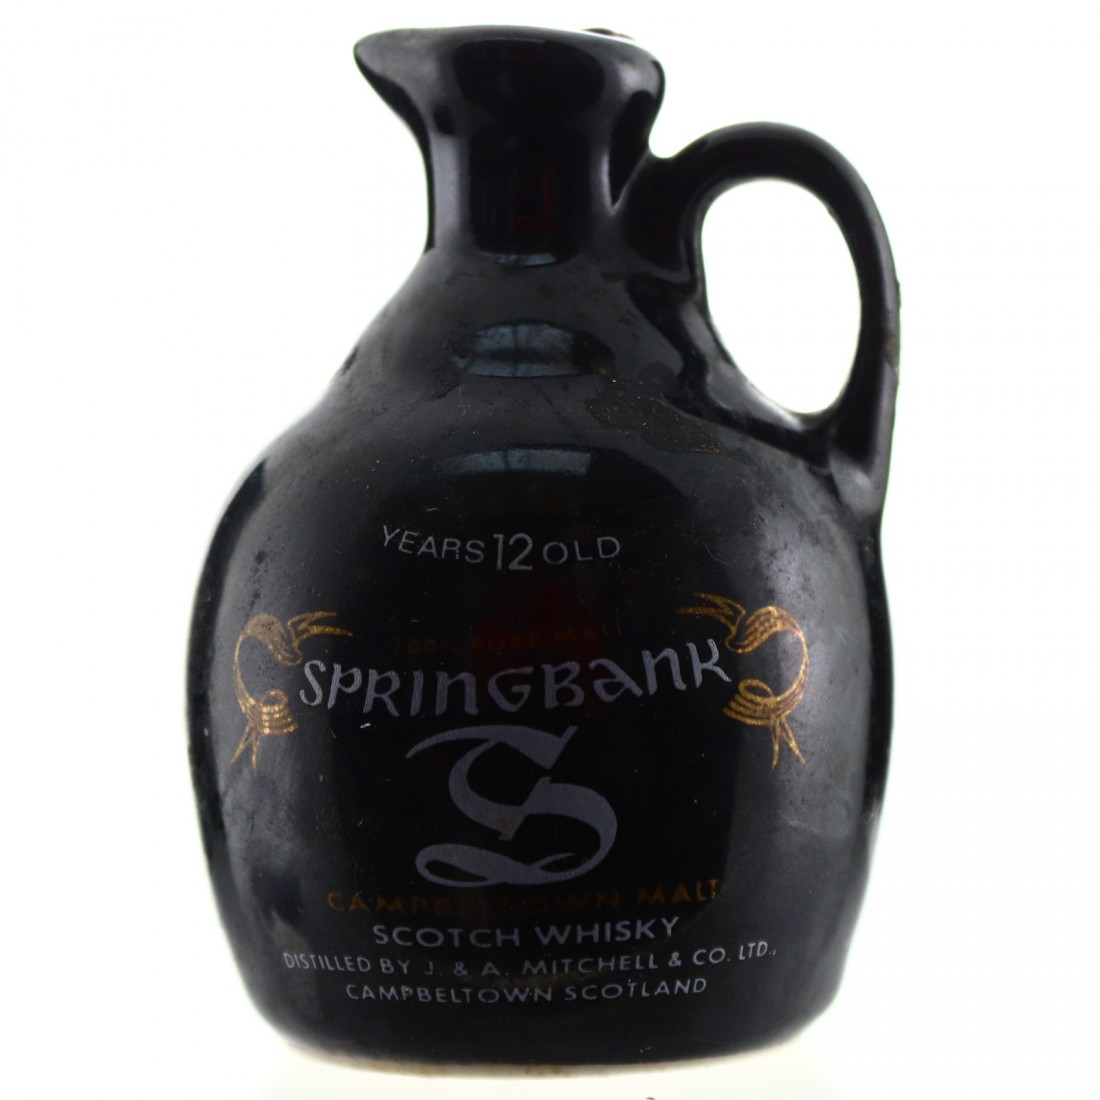 Springbank 12 Year Old Miniature Decanter